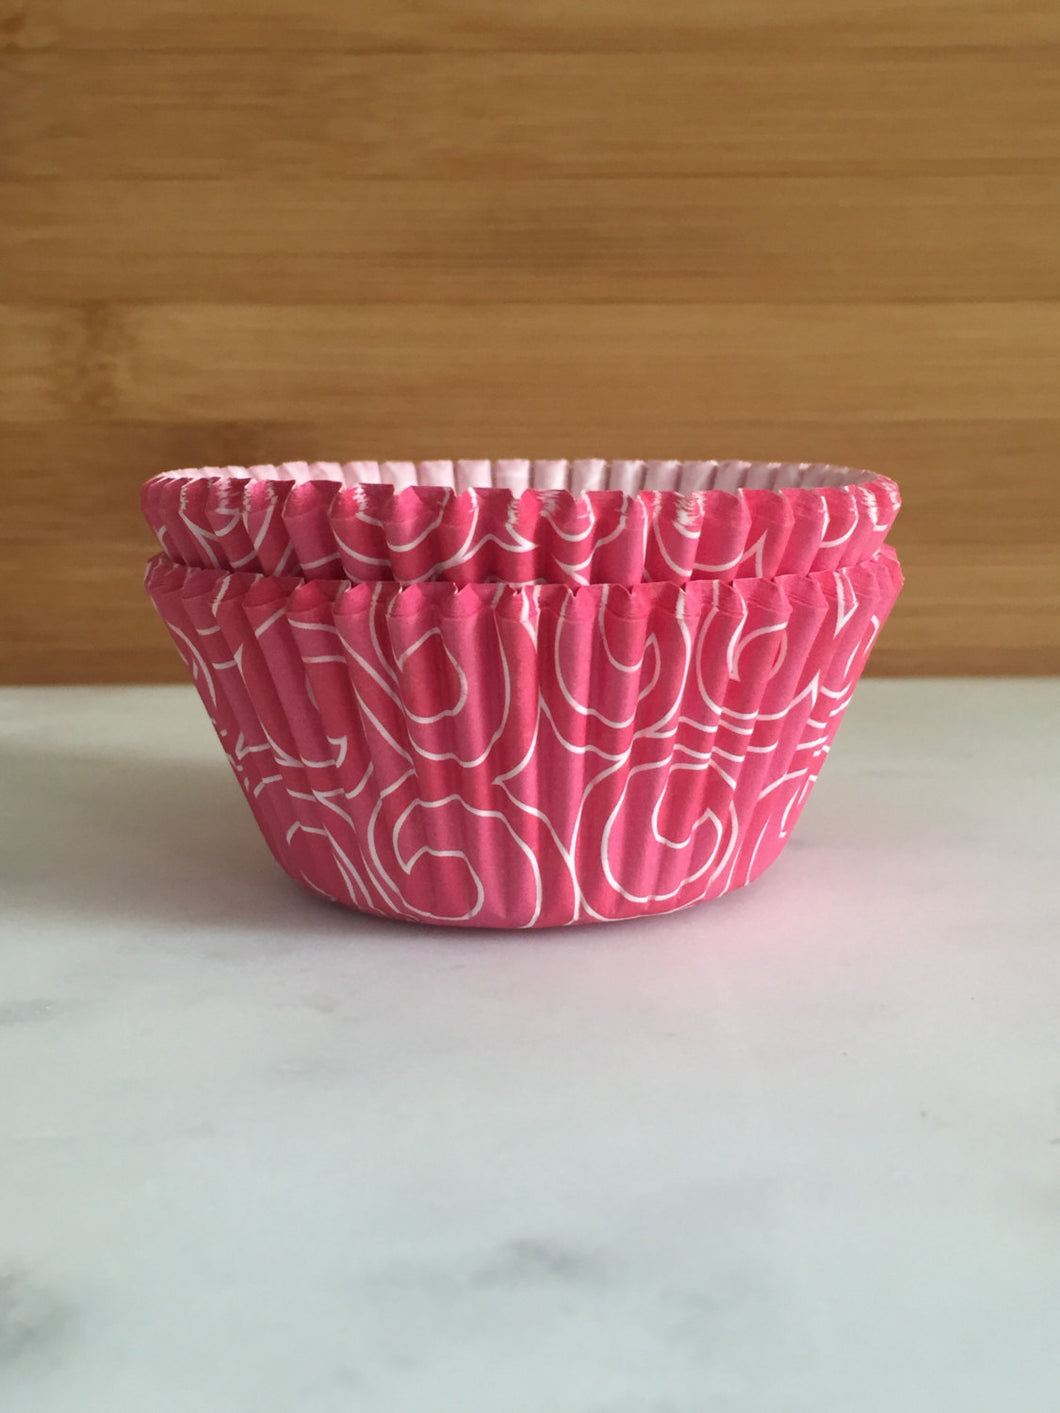 Pink with white swirls Cupcake Liners, Standard Sized, Baking Cups (50)